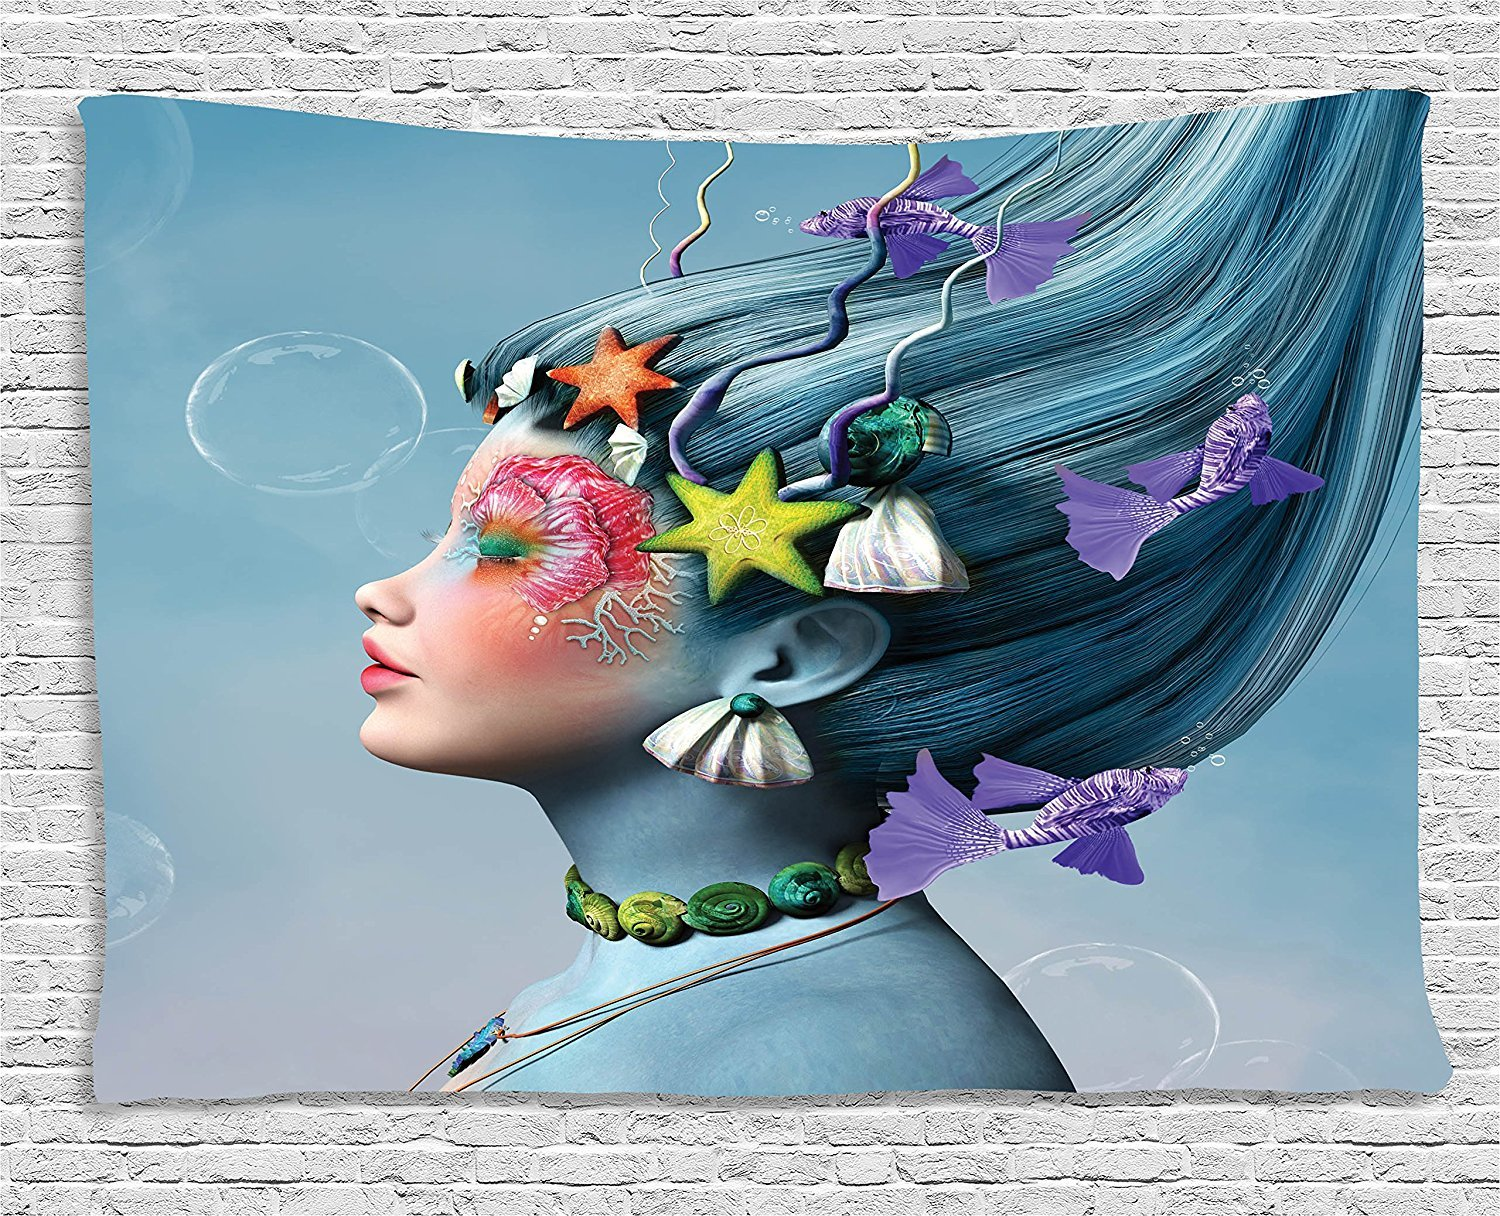 asddcdfdd Mermaid Tapestry, Woman with Underwater Themed Make Up Hairstyle Starfishes Seashells Fishes Bubbles, Wall Hanging for Bedroom Living Room Dorm, 80 W X 60 L Inches, Multicolor